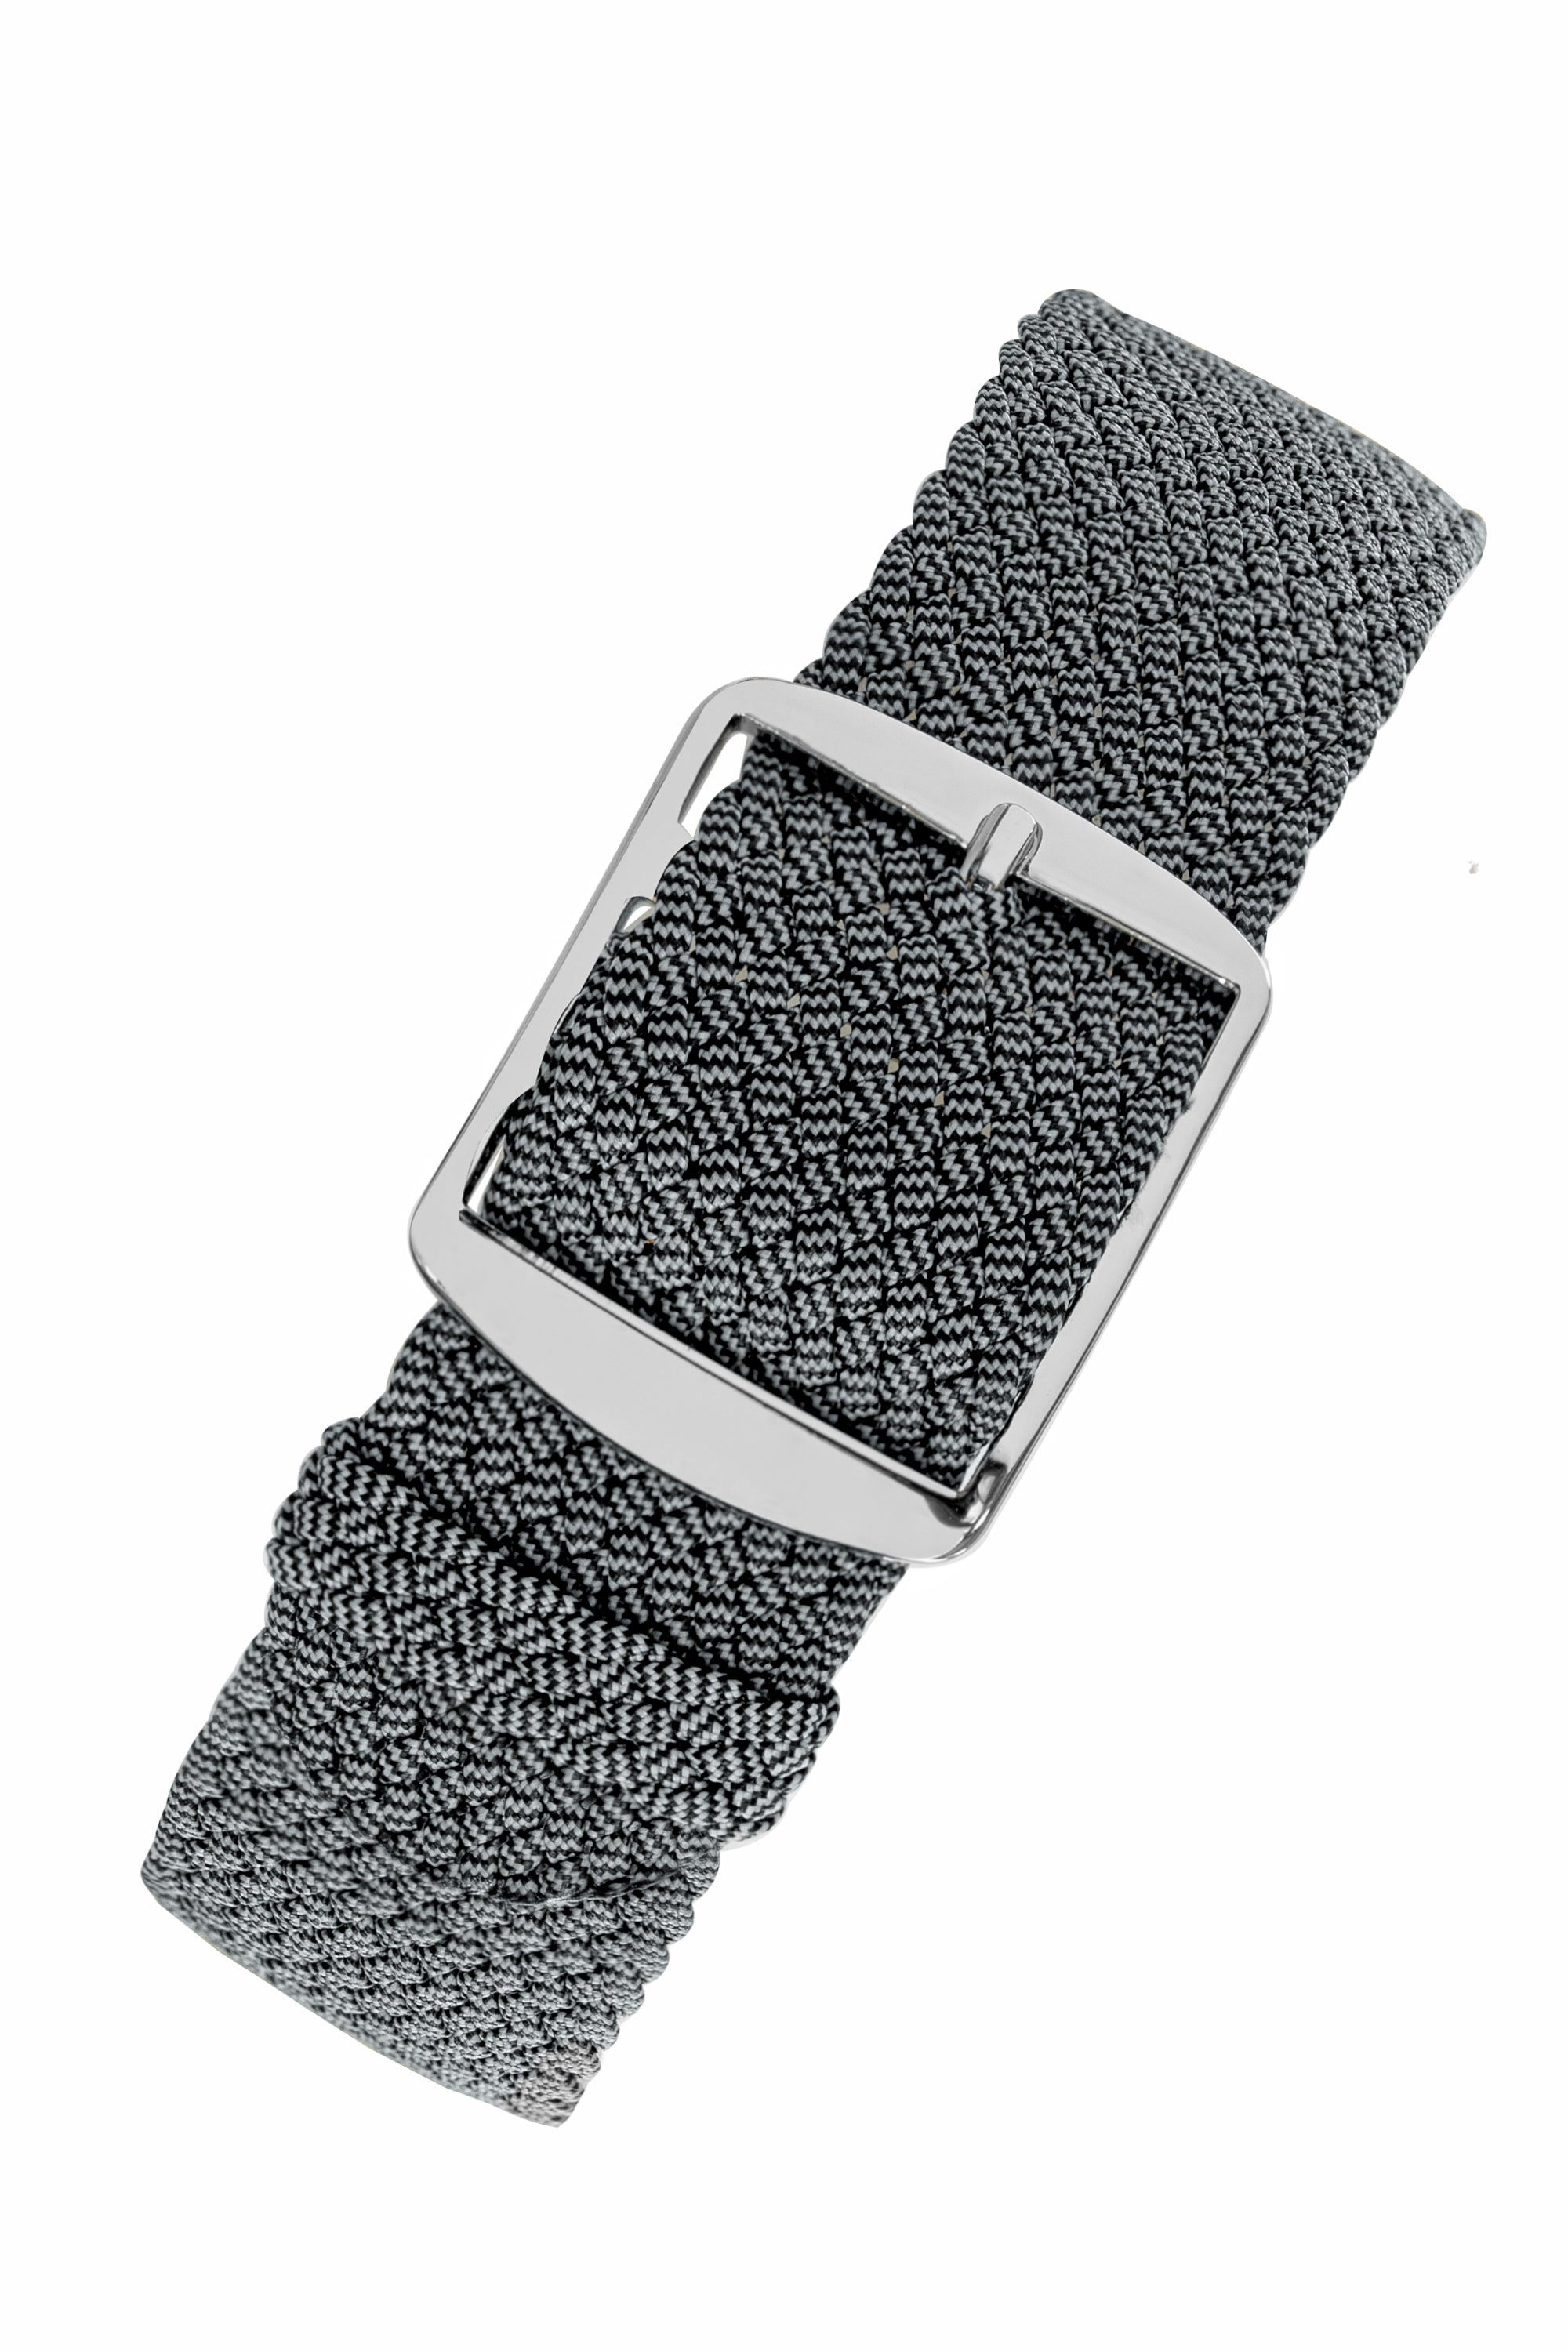 MELANGE PERLON Braided Watch Strap & Buckle in SHADOW GREY